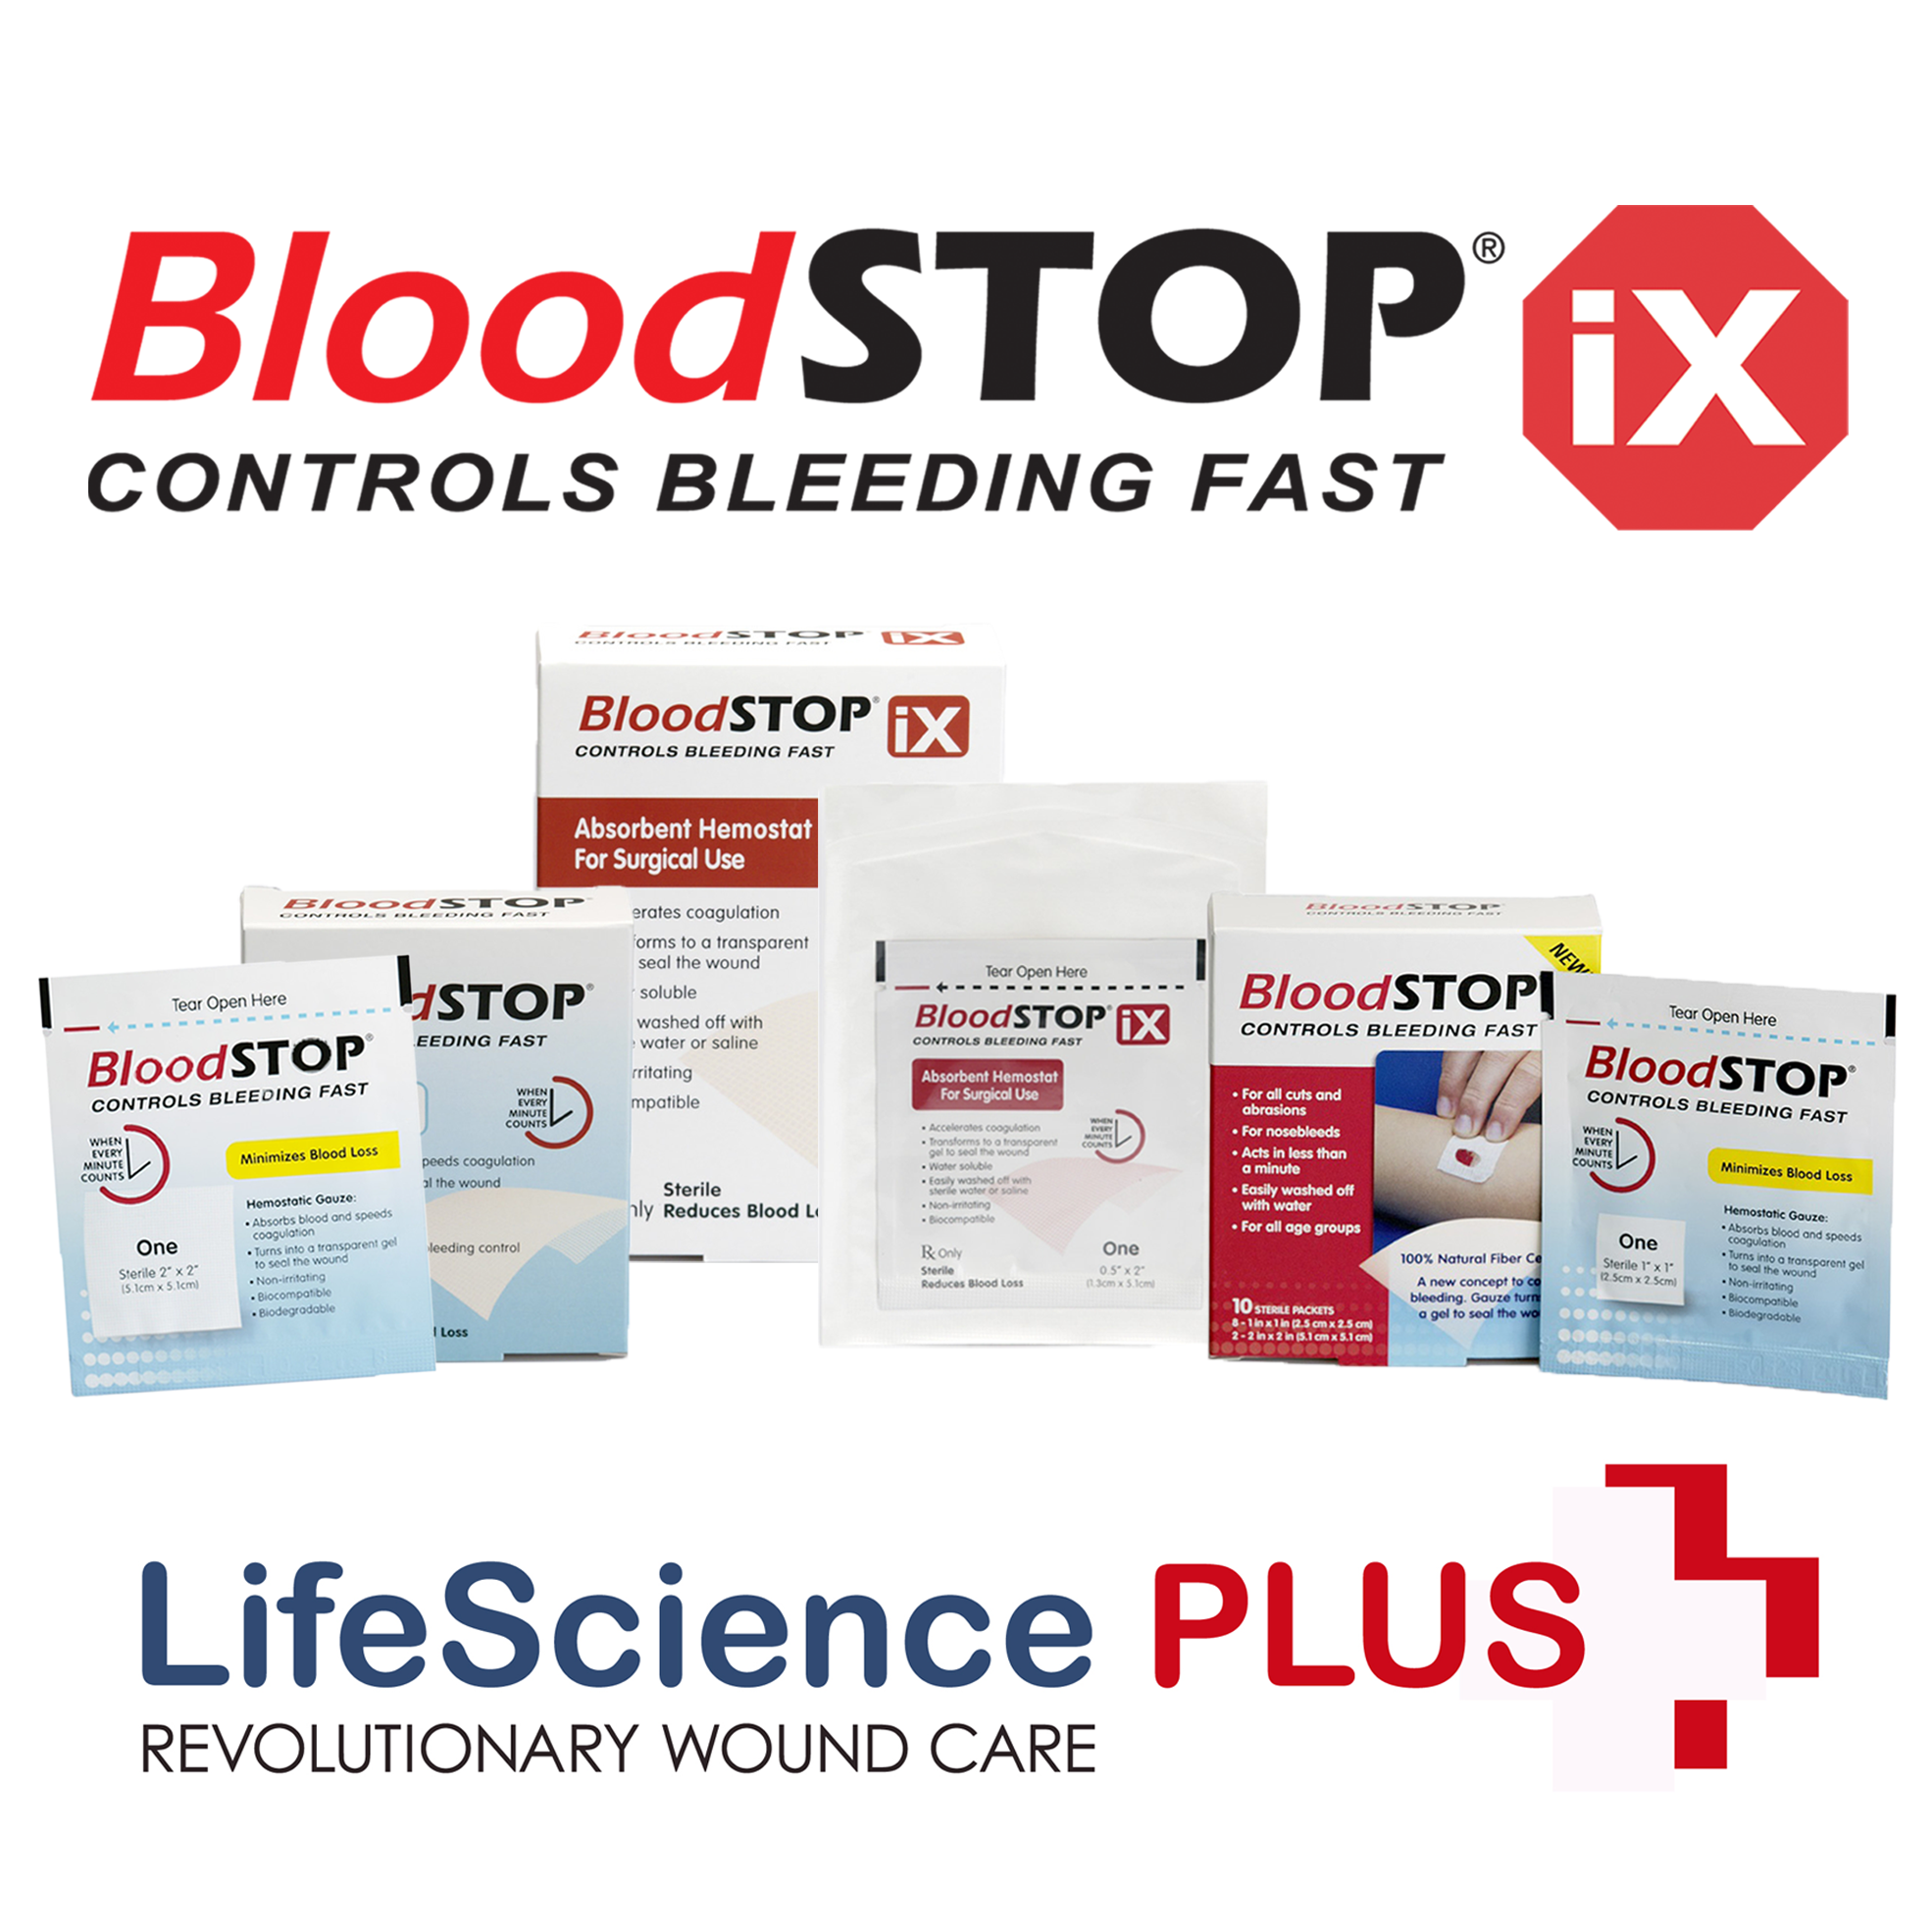 BloodSTOP Product Family | BloodSTOP | Class of 2018